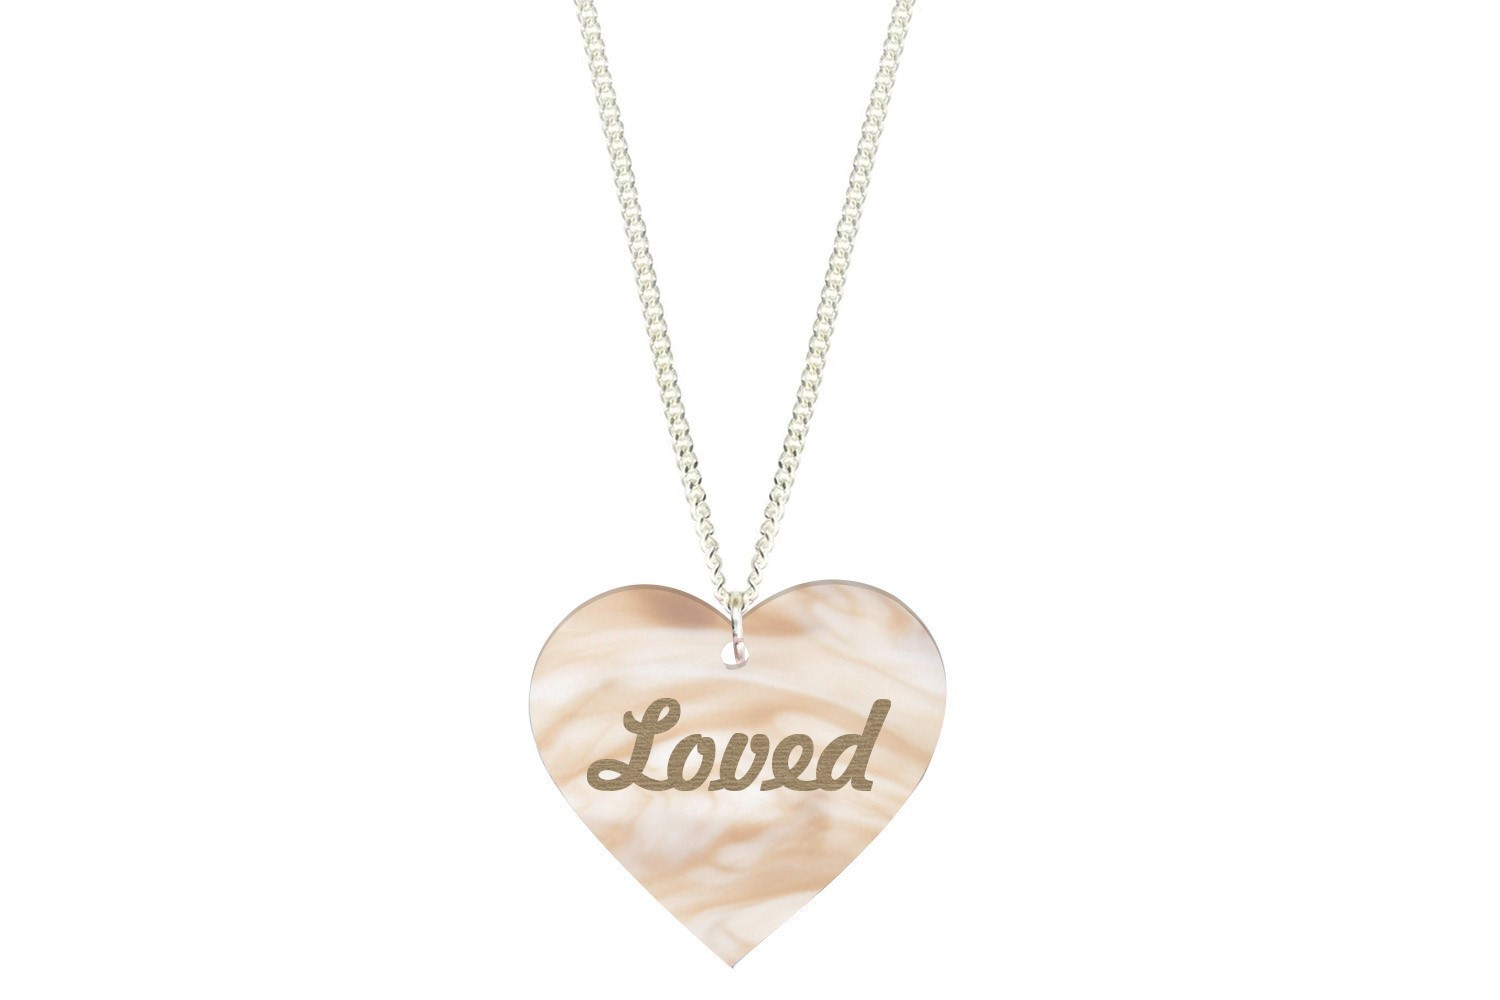 Custom Heart Pendant w/Name or Saying on Chain Necklace